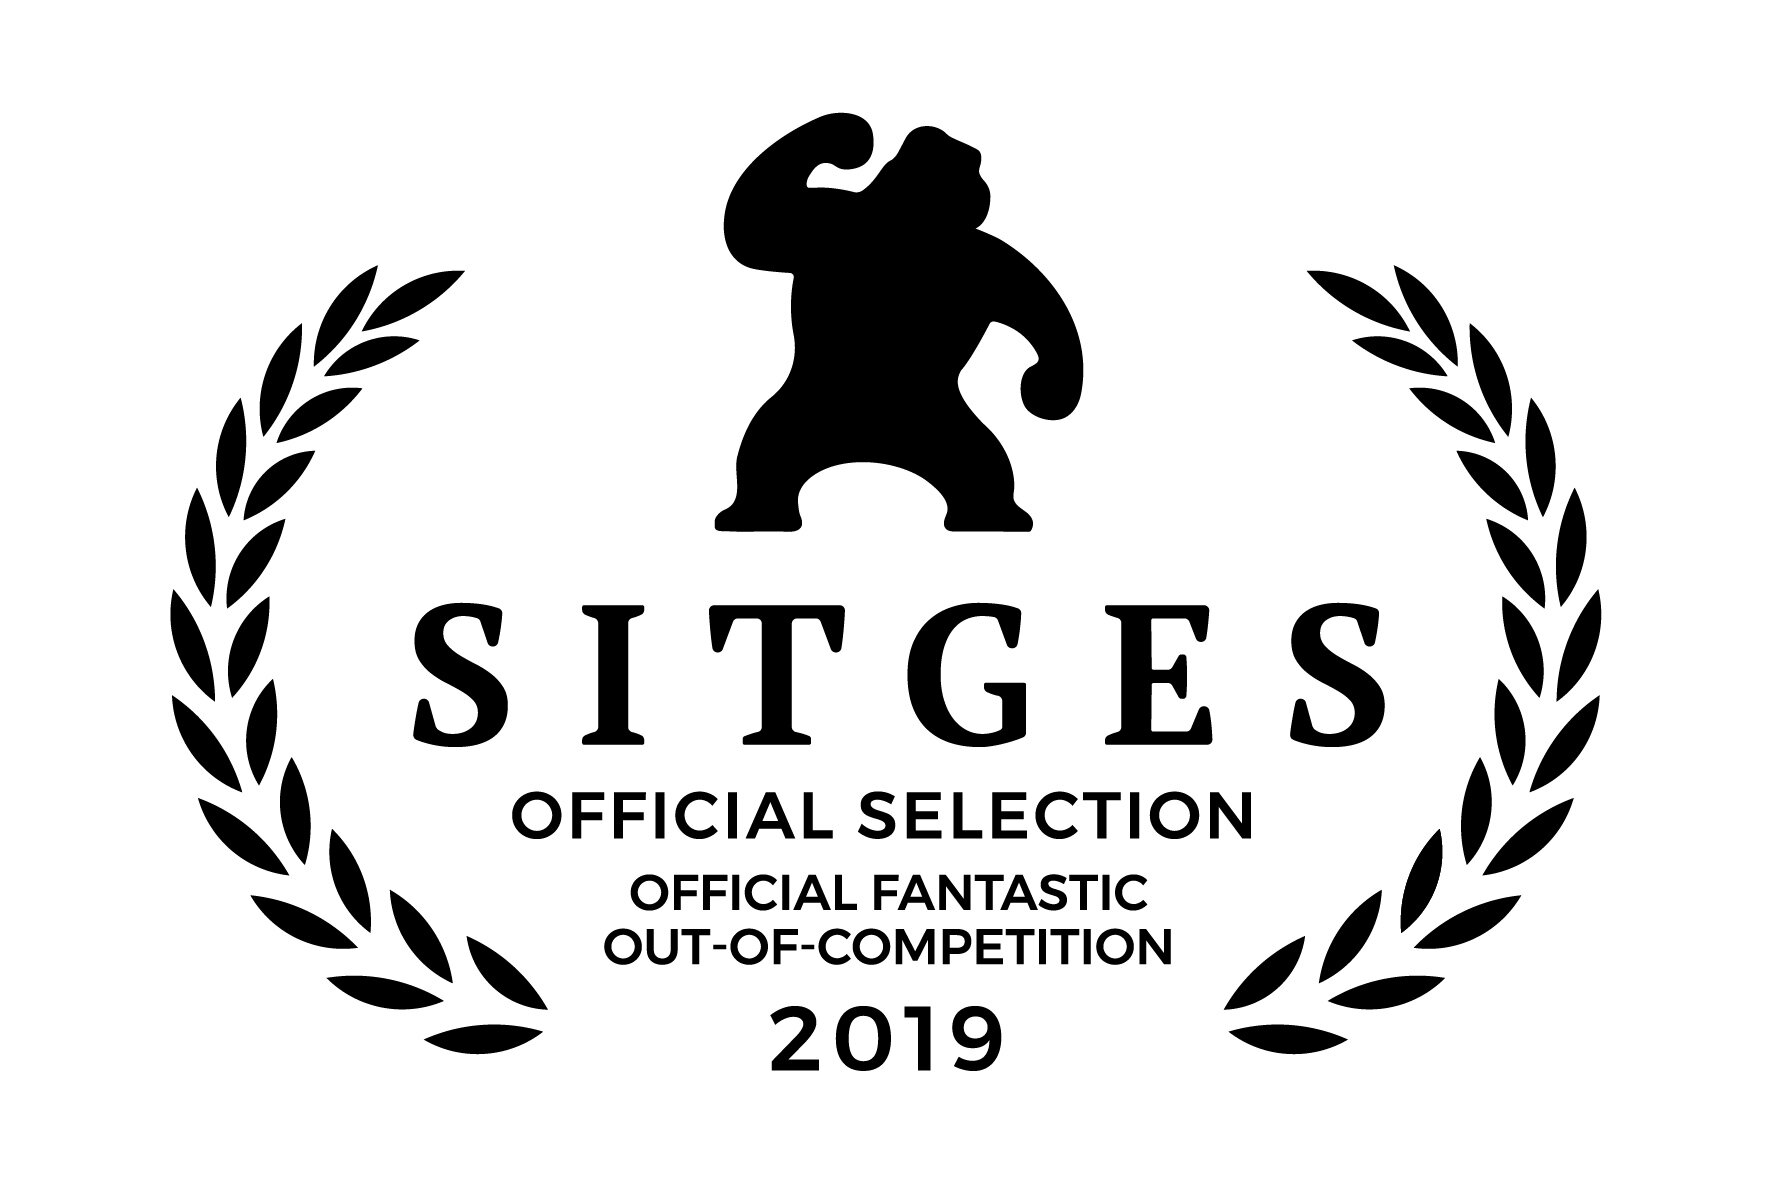 SITGES19_OfficialSelection_FantasticOutOfCompetition.jpg